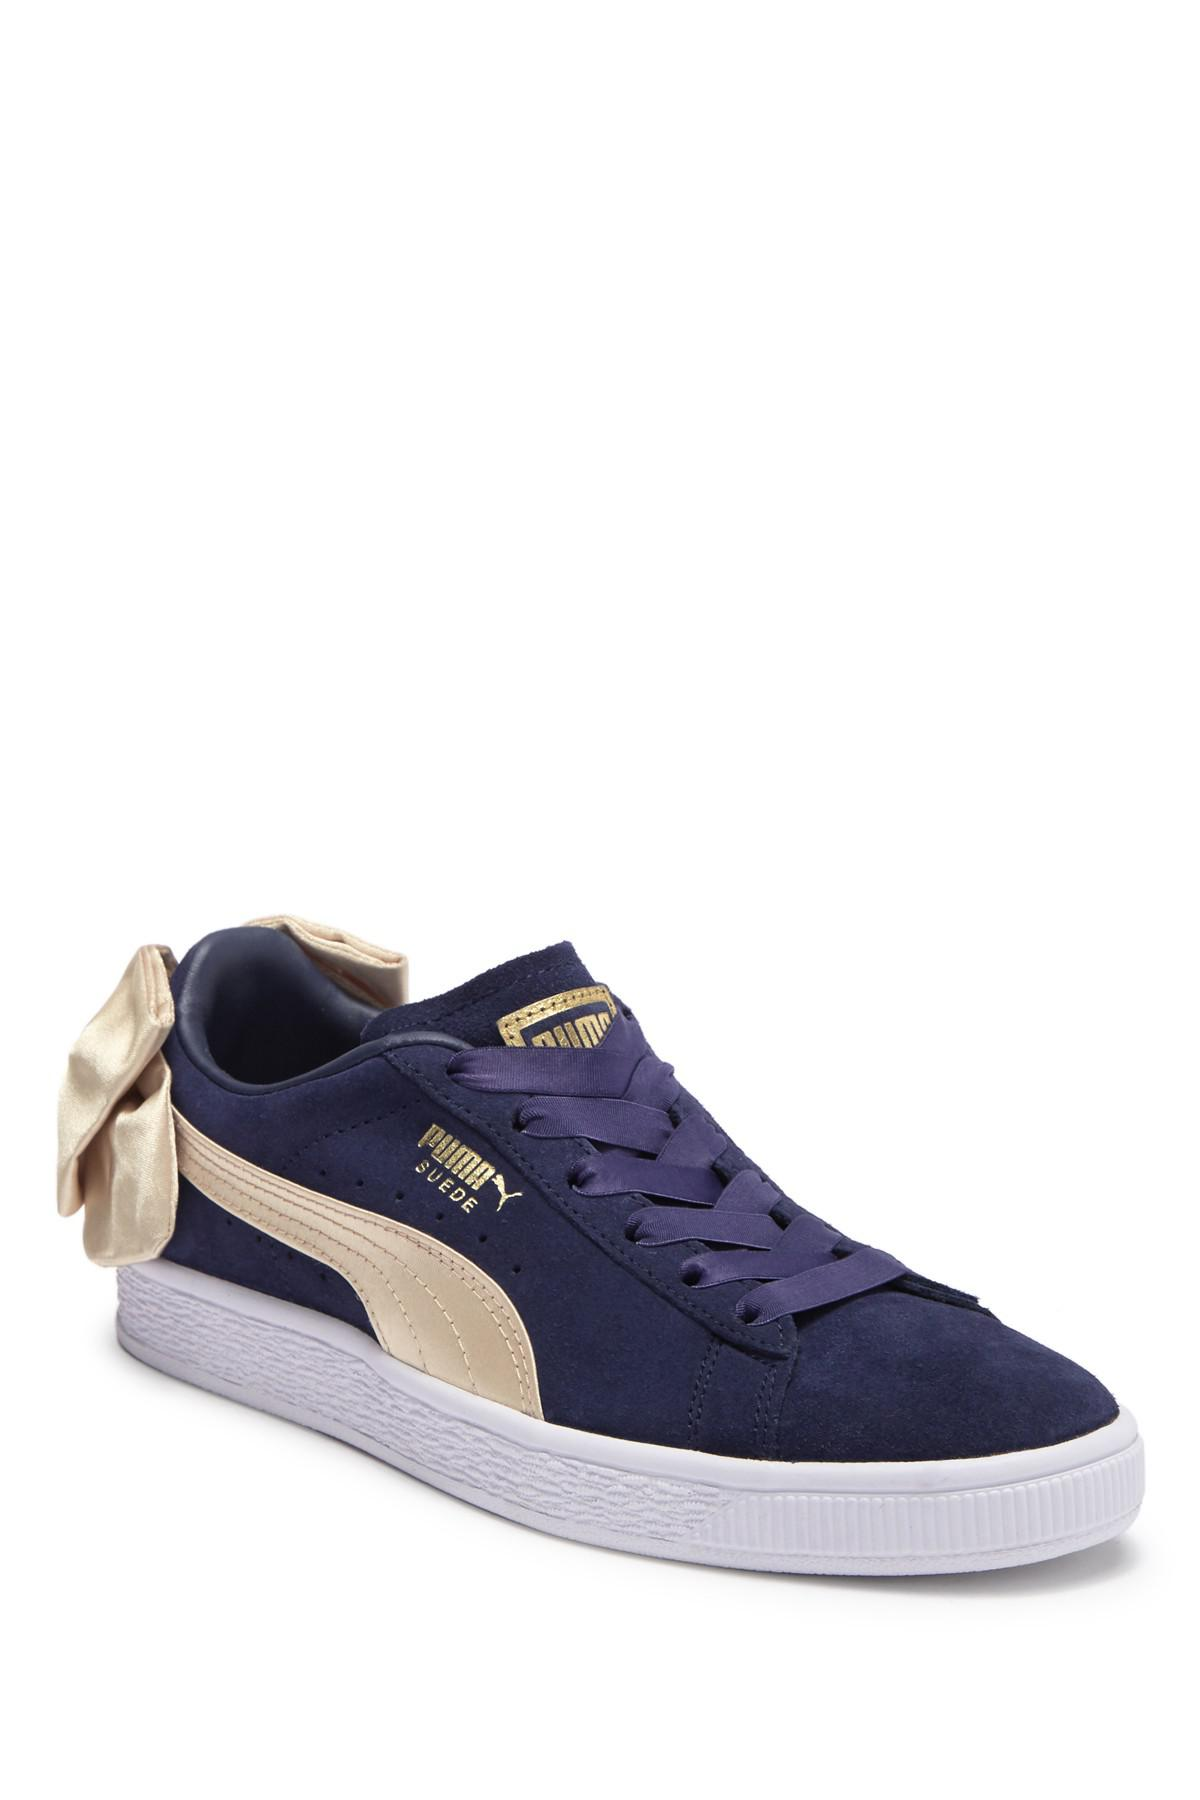 84a735154280 Lyst - PUMA Suede Bow Varsity Sneaker in Blue - Save 32%